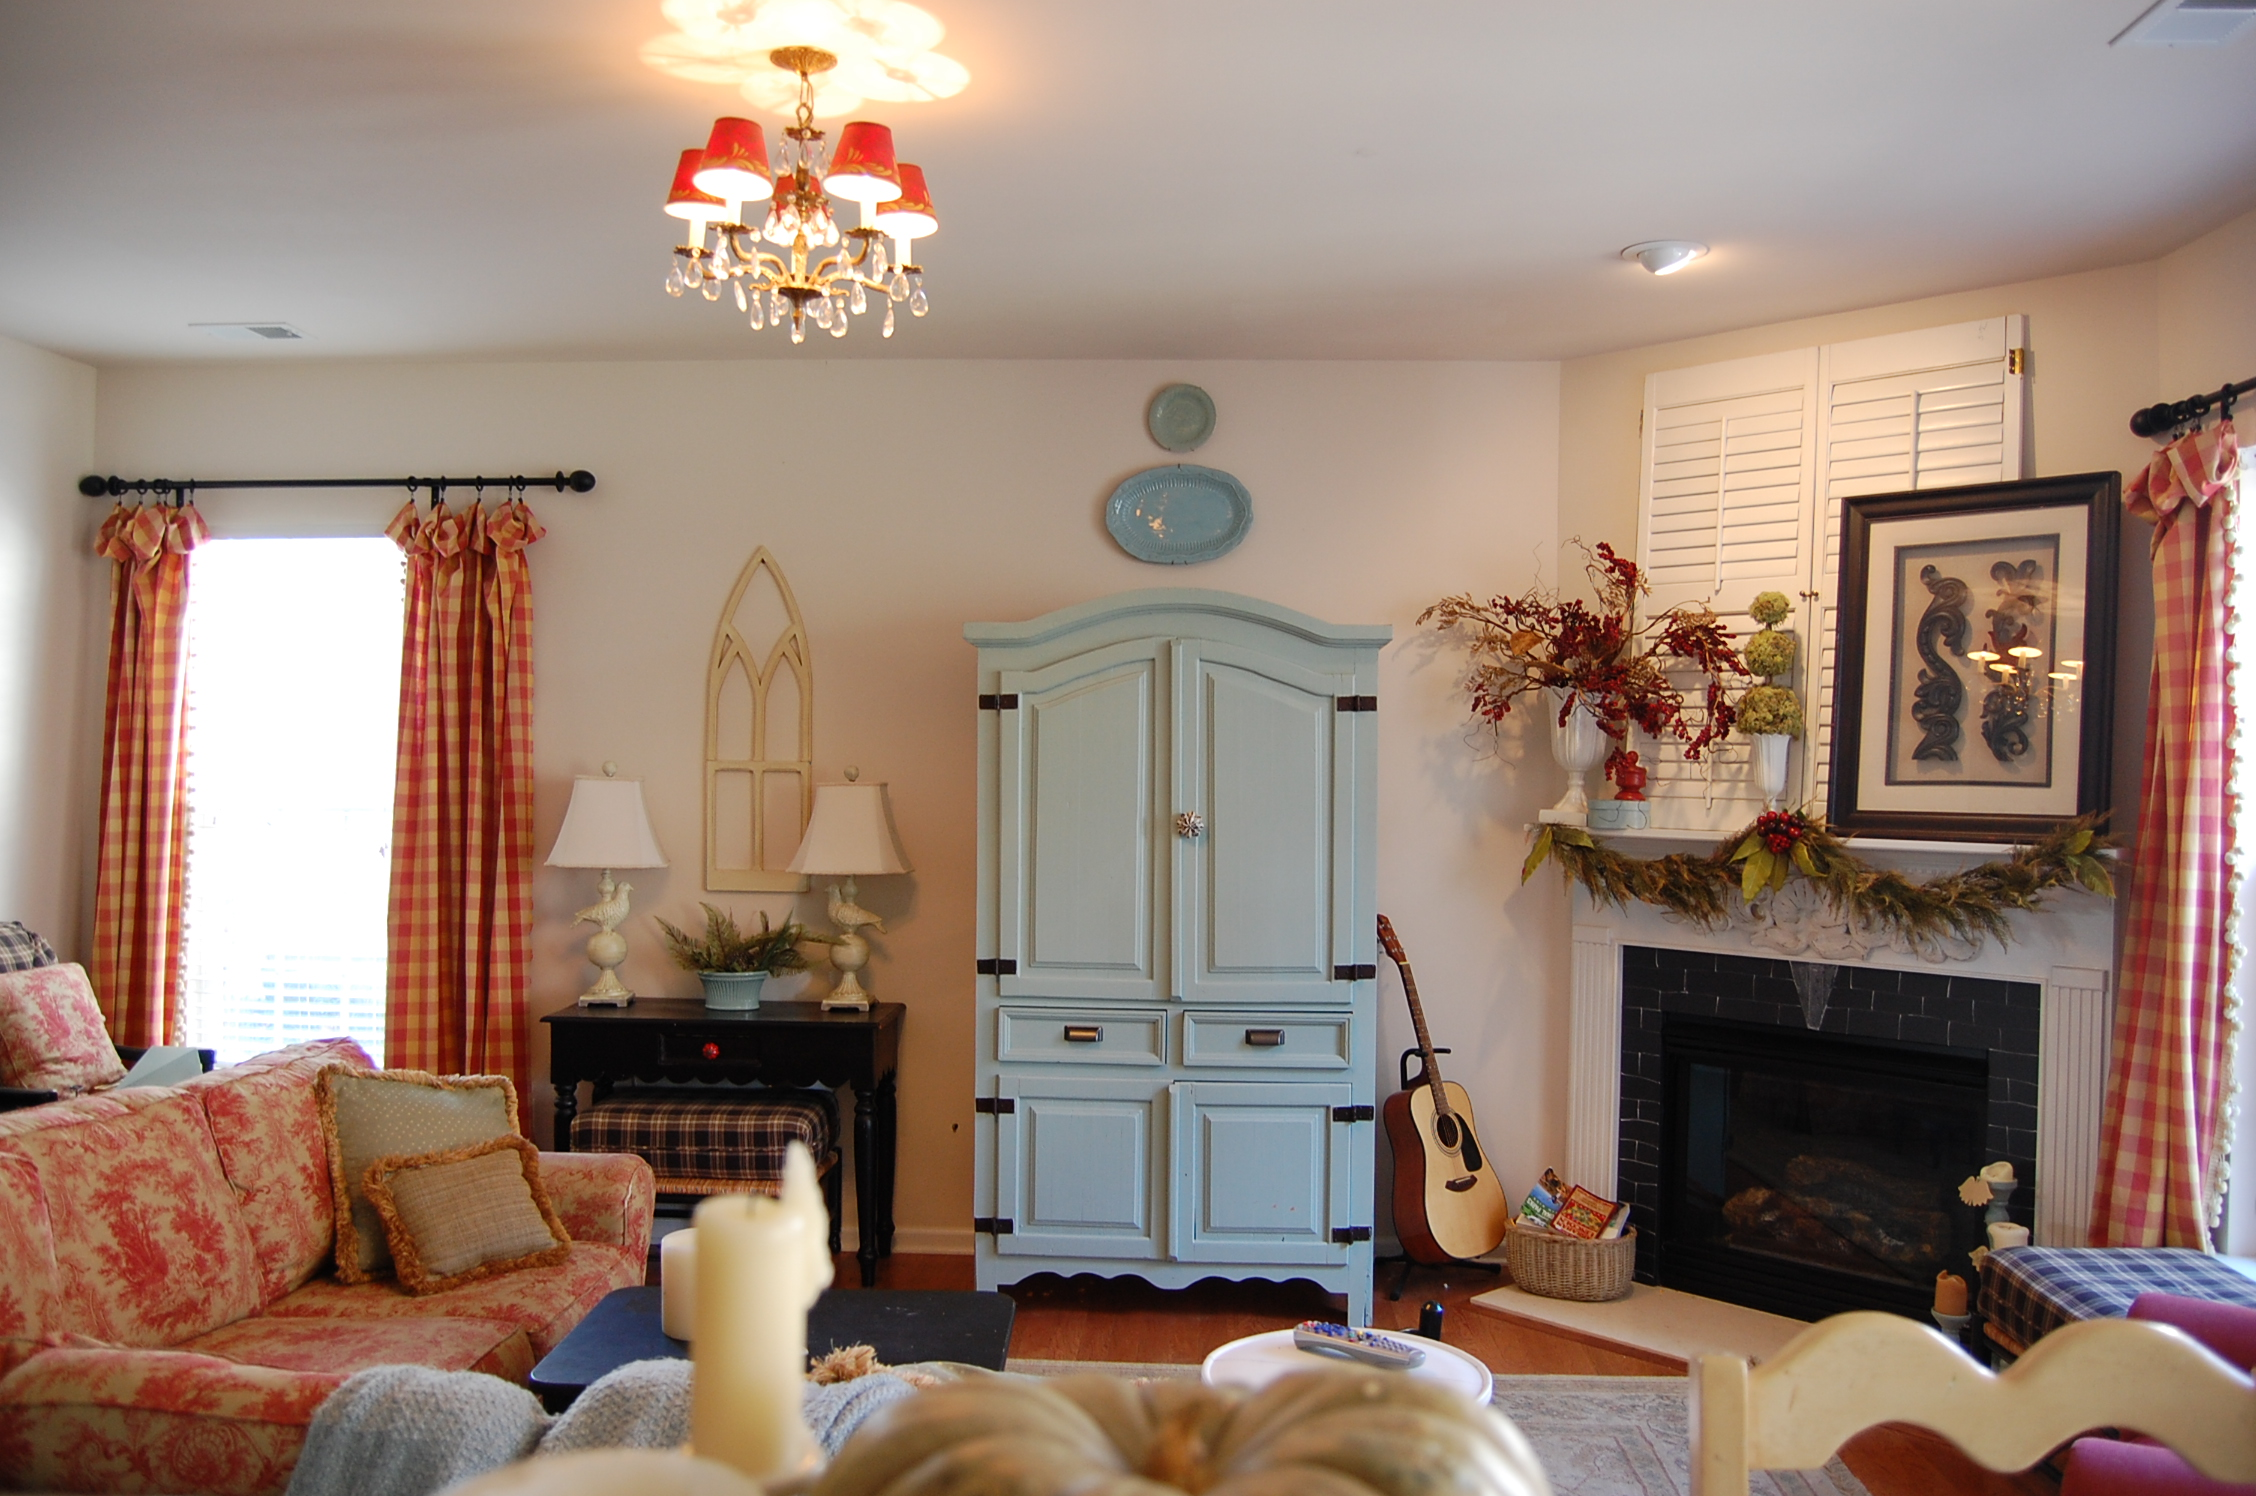 How To Decorate A Living Room Without A Fireplace Cozy Uamp Small Living Room Interior Designs